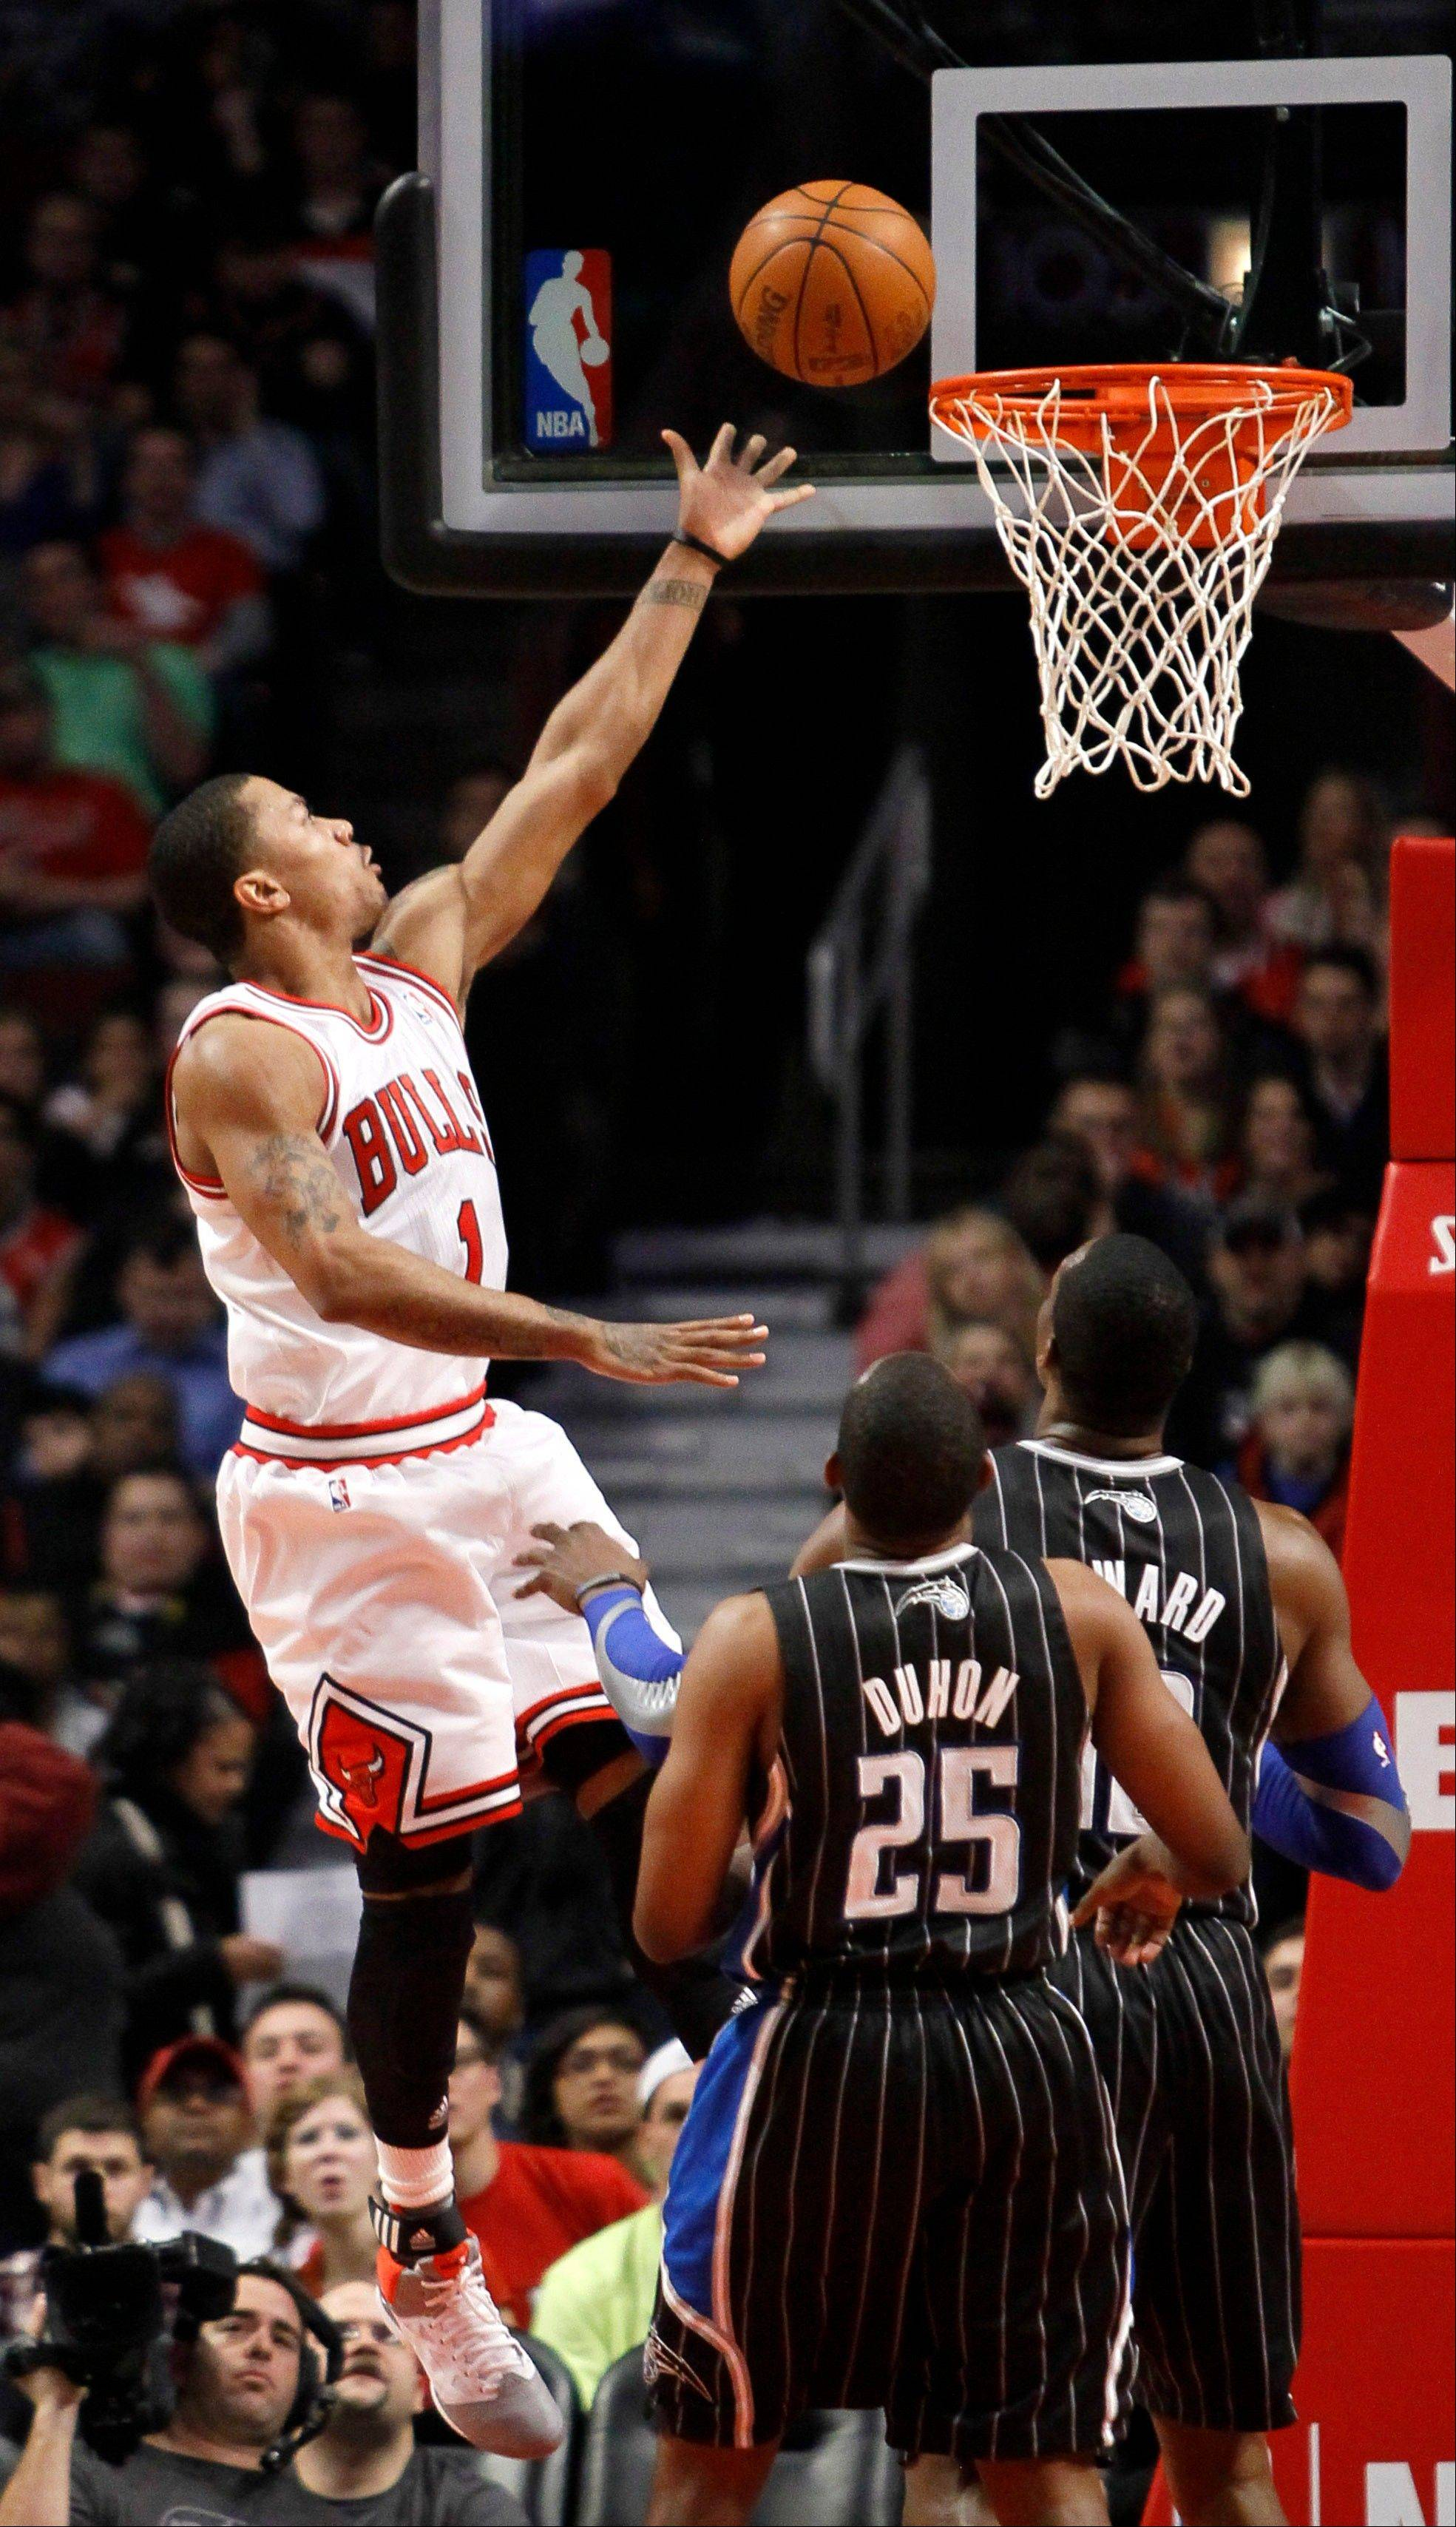 Chicago Bulls guard Derrick Rose (1) drives to the basket past Orlando Magic's Chris Duhon and Dwight Howard during the first half of an NBA basketball game Thursday, March 8, 2012, in Chicago.